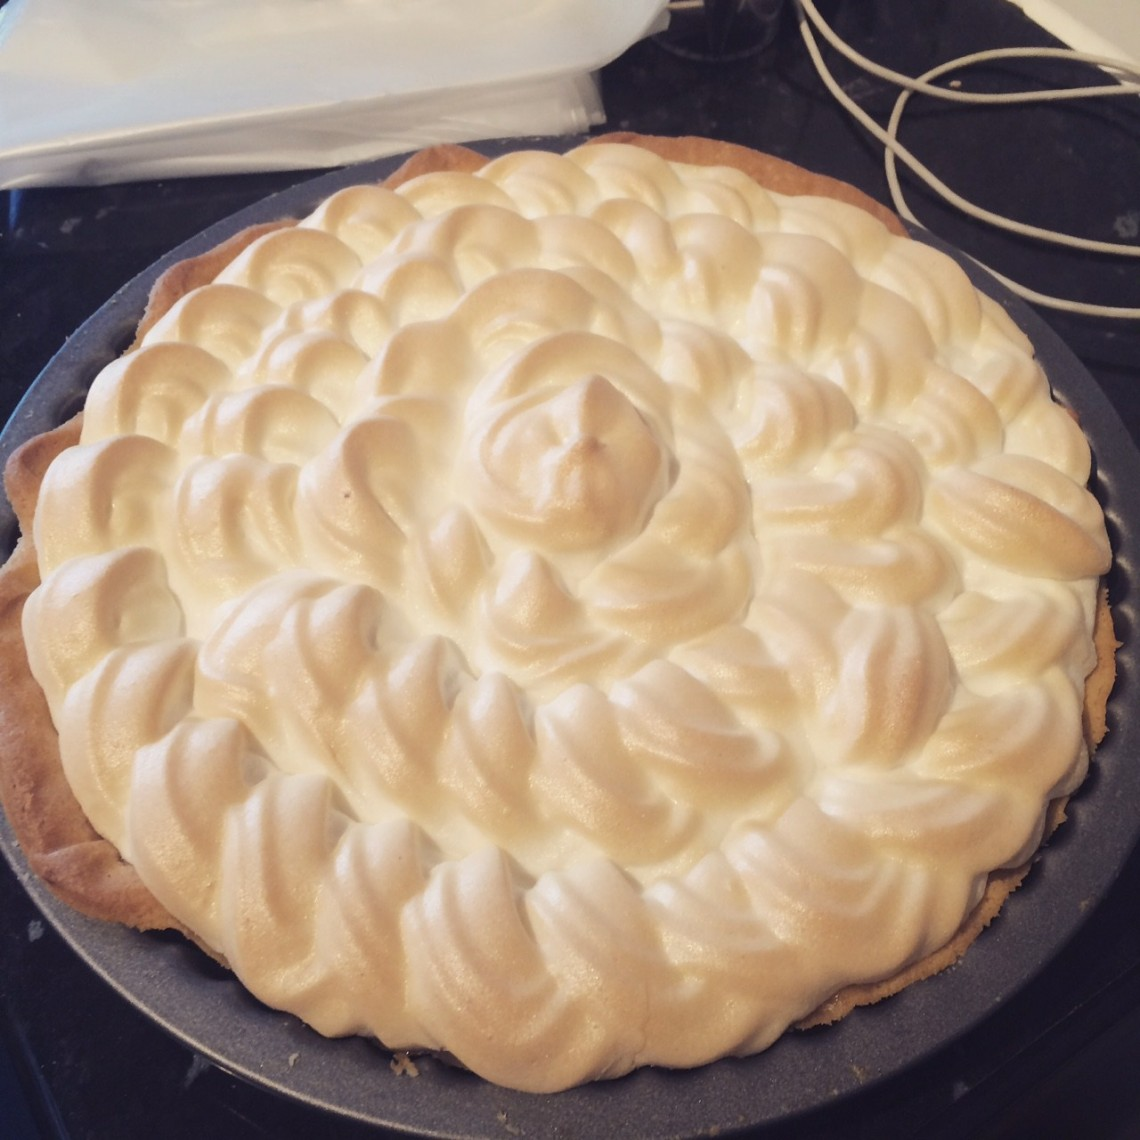 BOTW lemon meringue pie